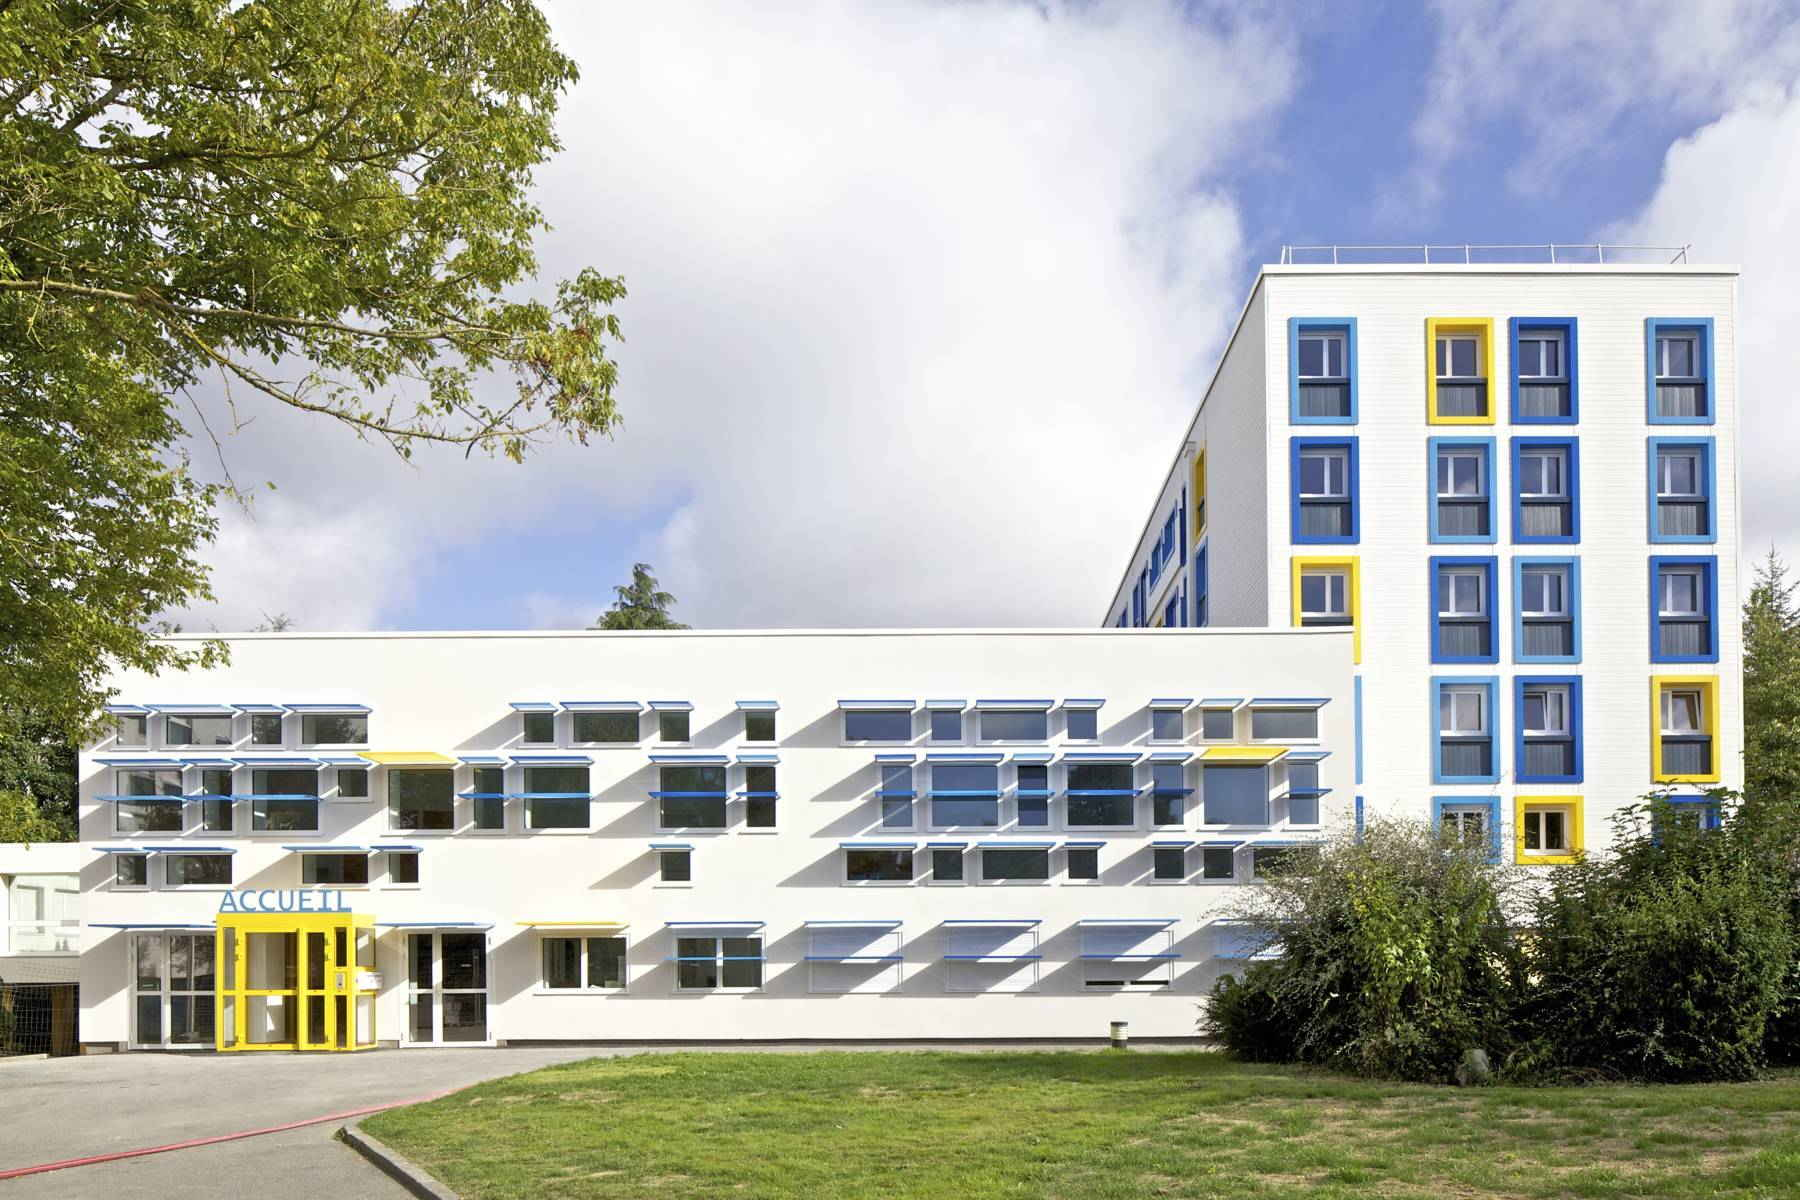 B timents a b c de la cit universitaire patton rennes for Chambre universitaire rennes